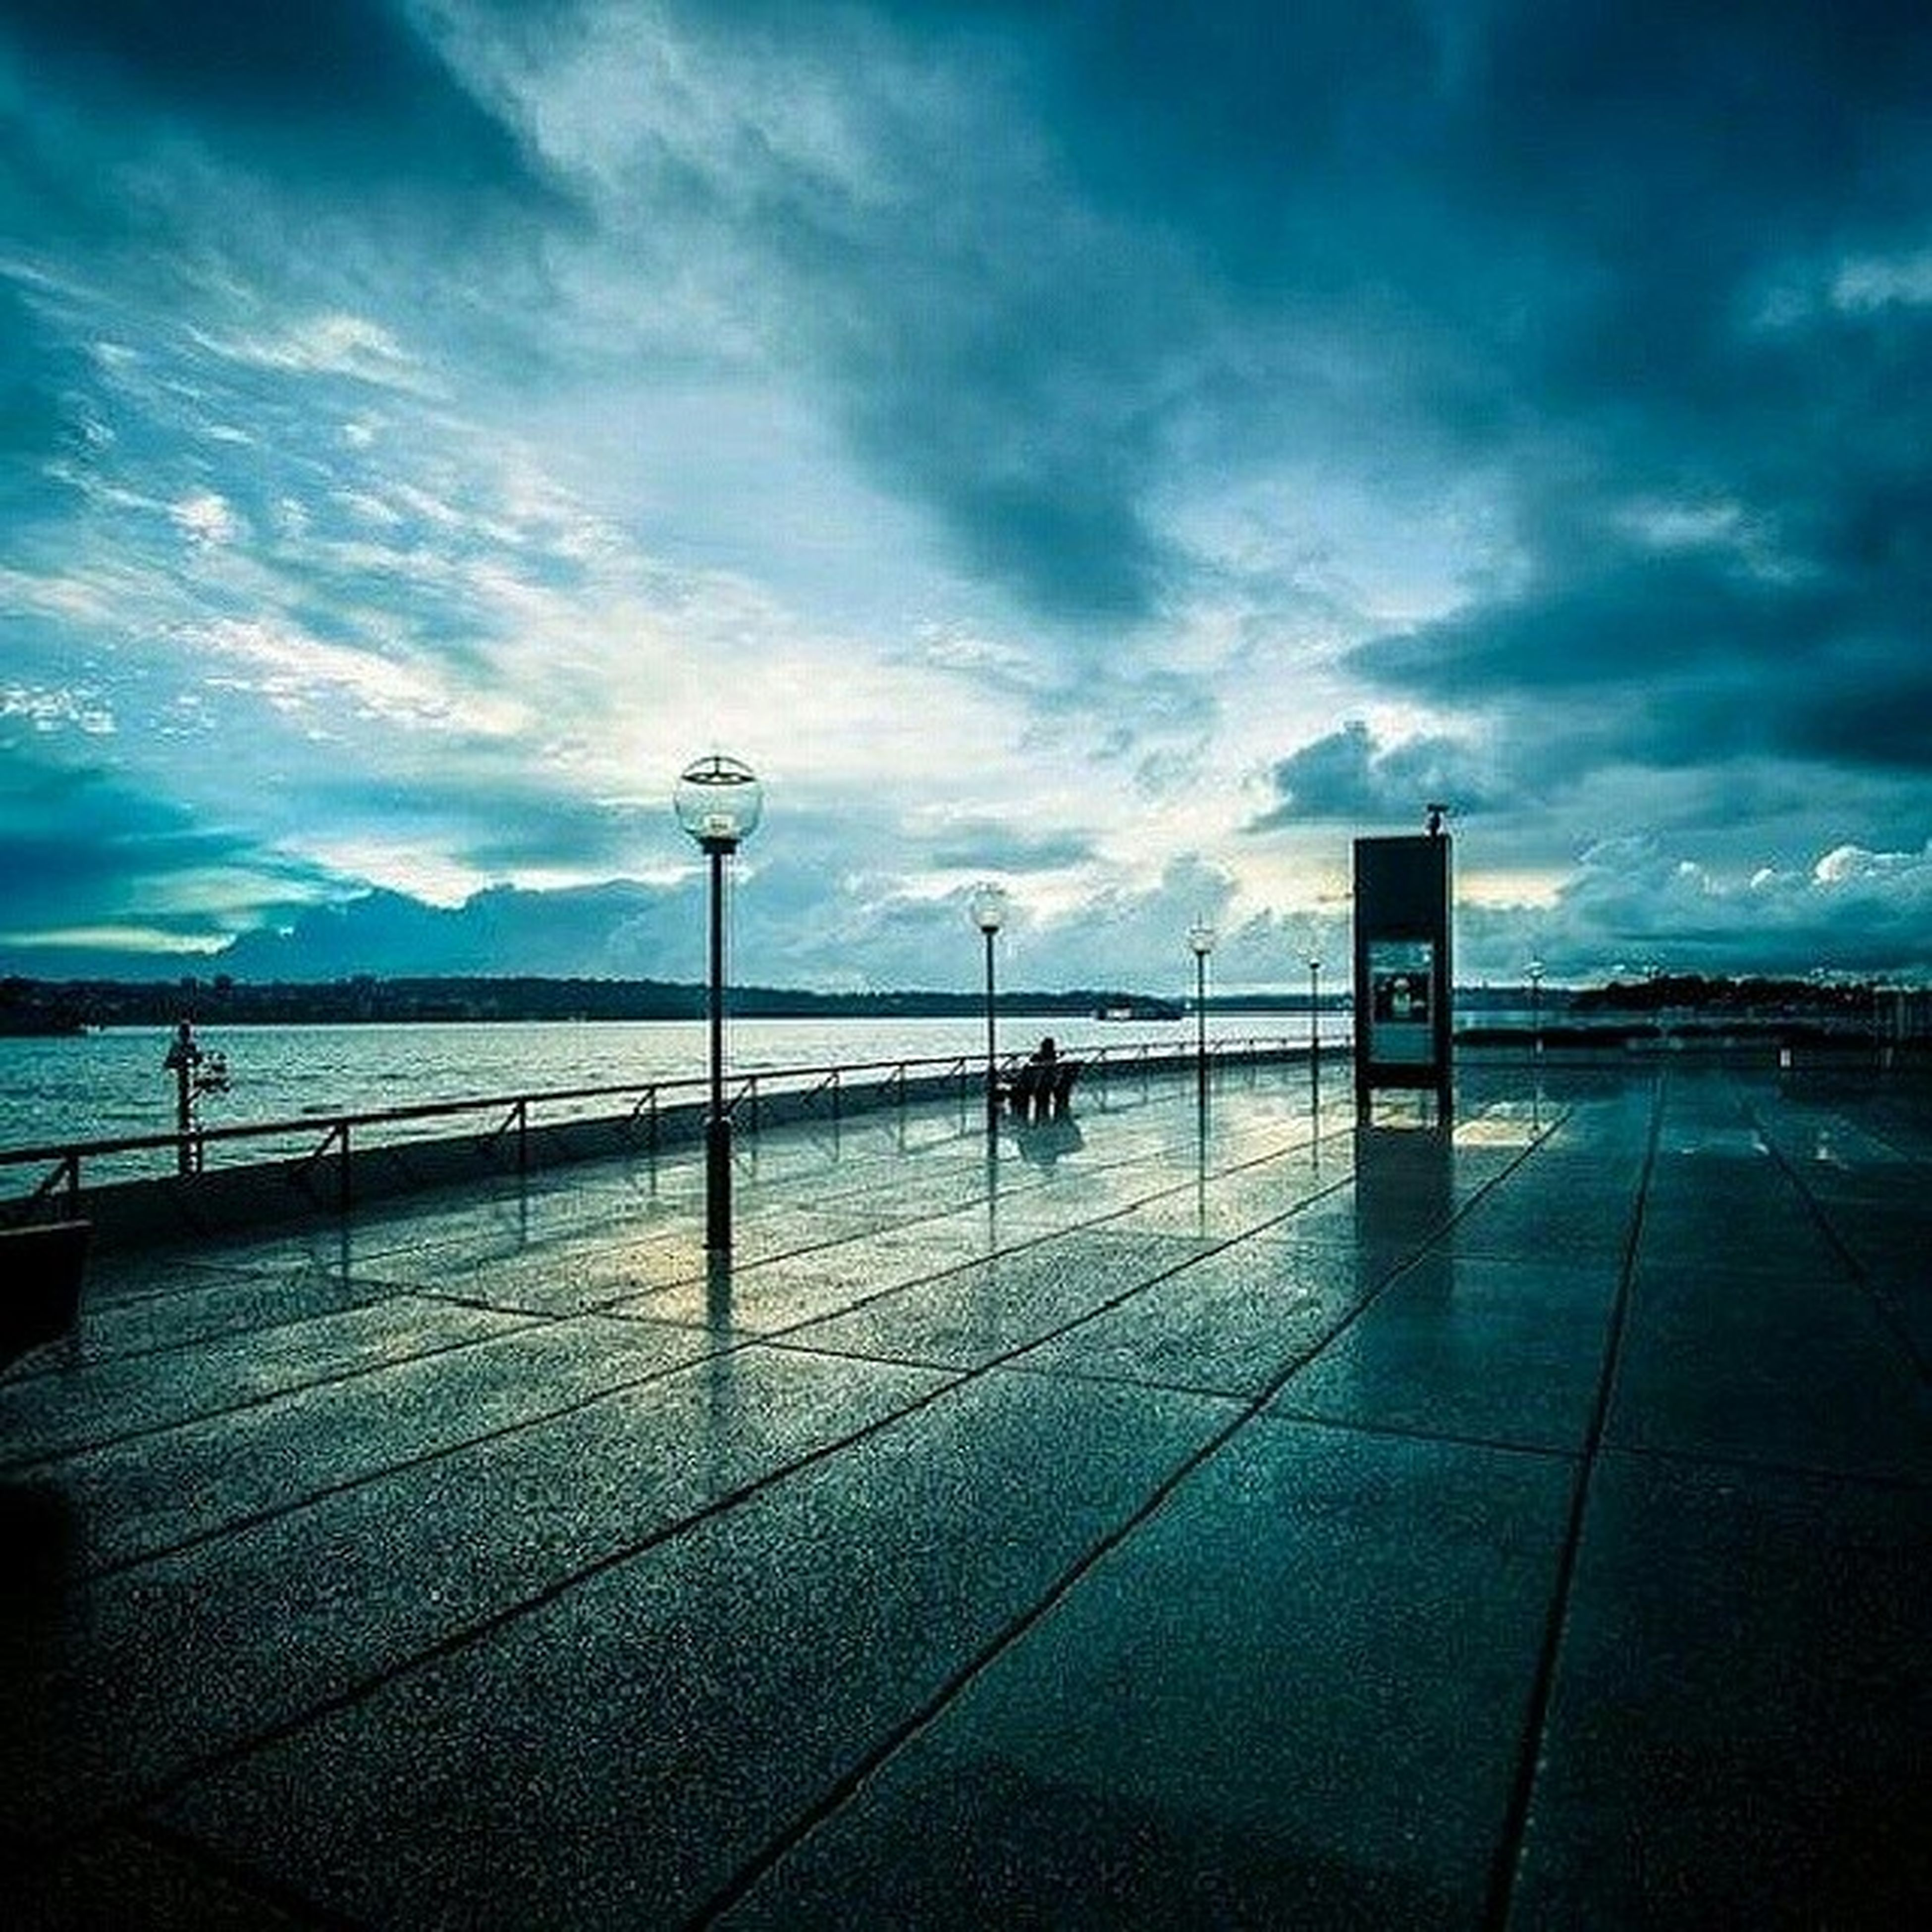 sky, cloud - sky, sea, water, built structure, cloudy, cloud, architecture, street light, blue, beach, nature, railing, horizon over water, connection, outdoors, day, incidental people, tranquility, scenics